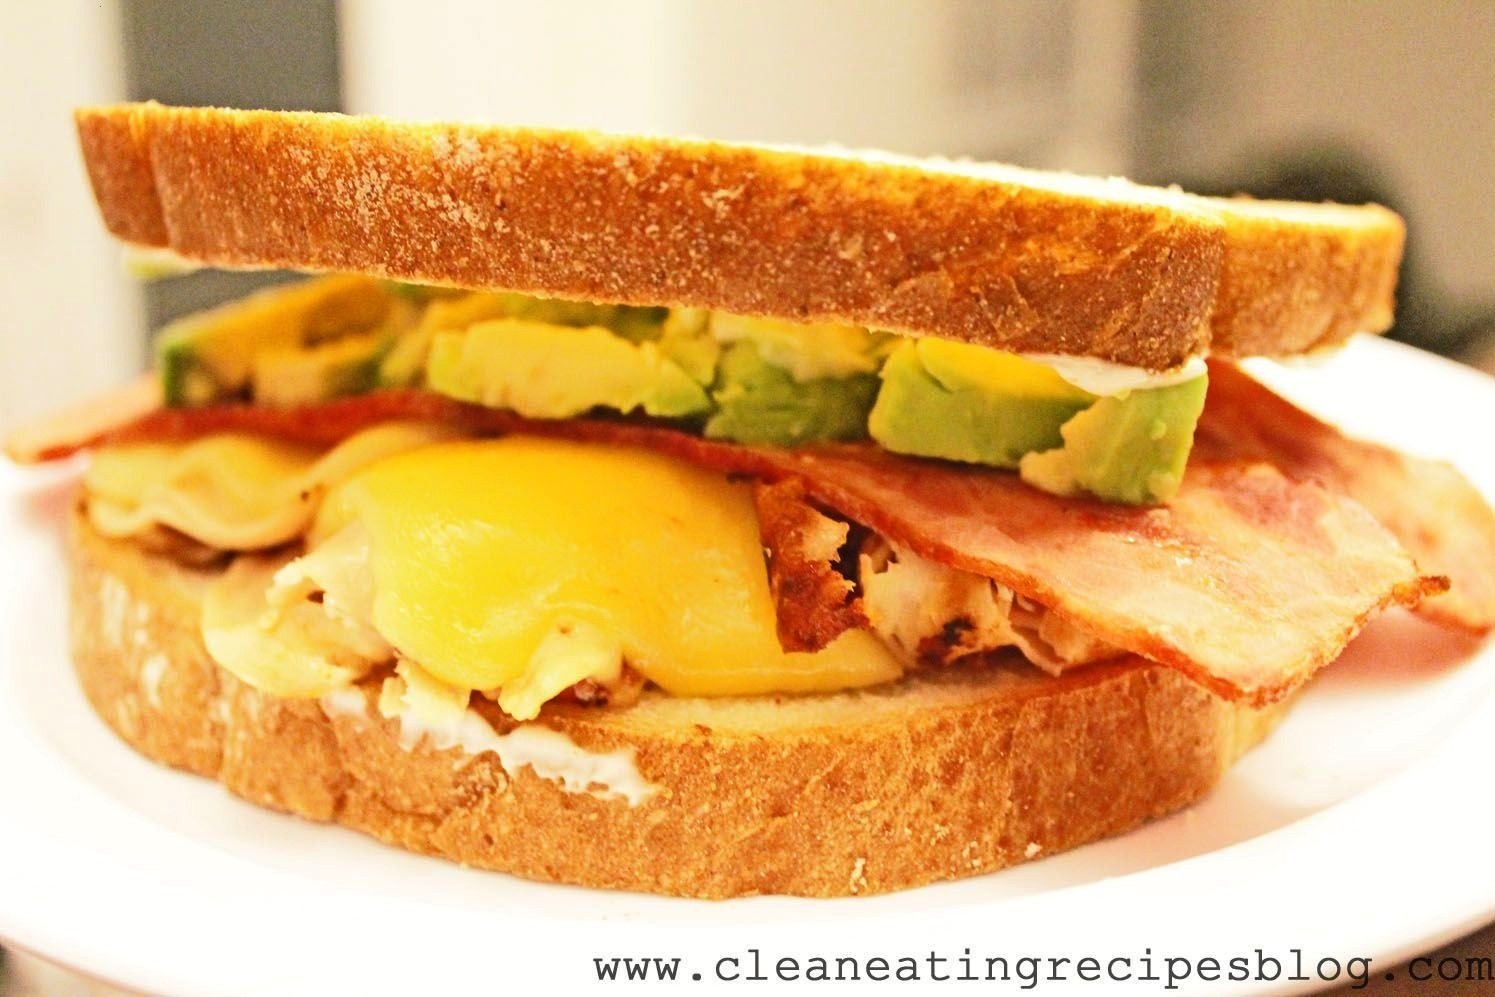 Eating Recipe – Turkey, Avocado and Gouda Sandwich | Weight Loss Meals a...,  ... Clean Eating Re